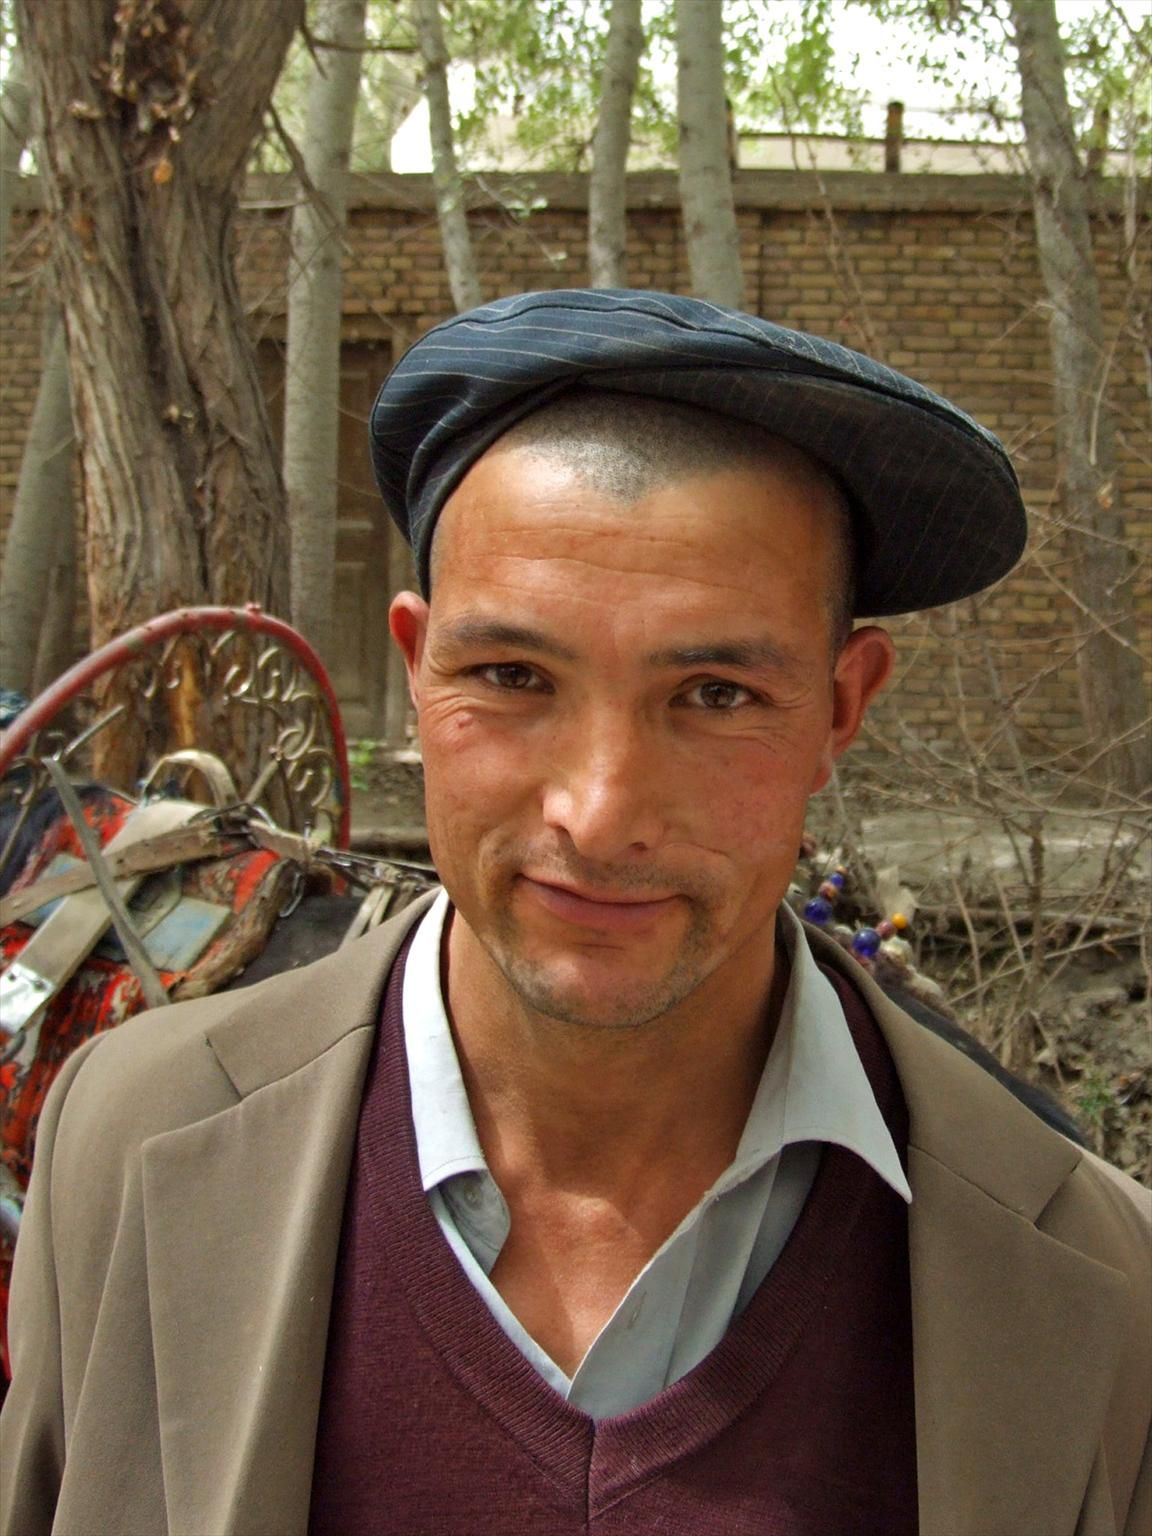 Uyghurs, a Turkhic ethnic group, live primarily in the Xinjiang Uyghur  Autonomous Region in the People's Republic of China